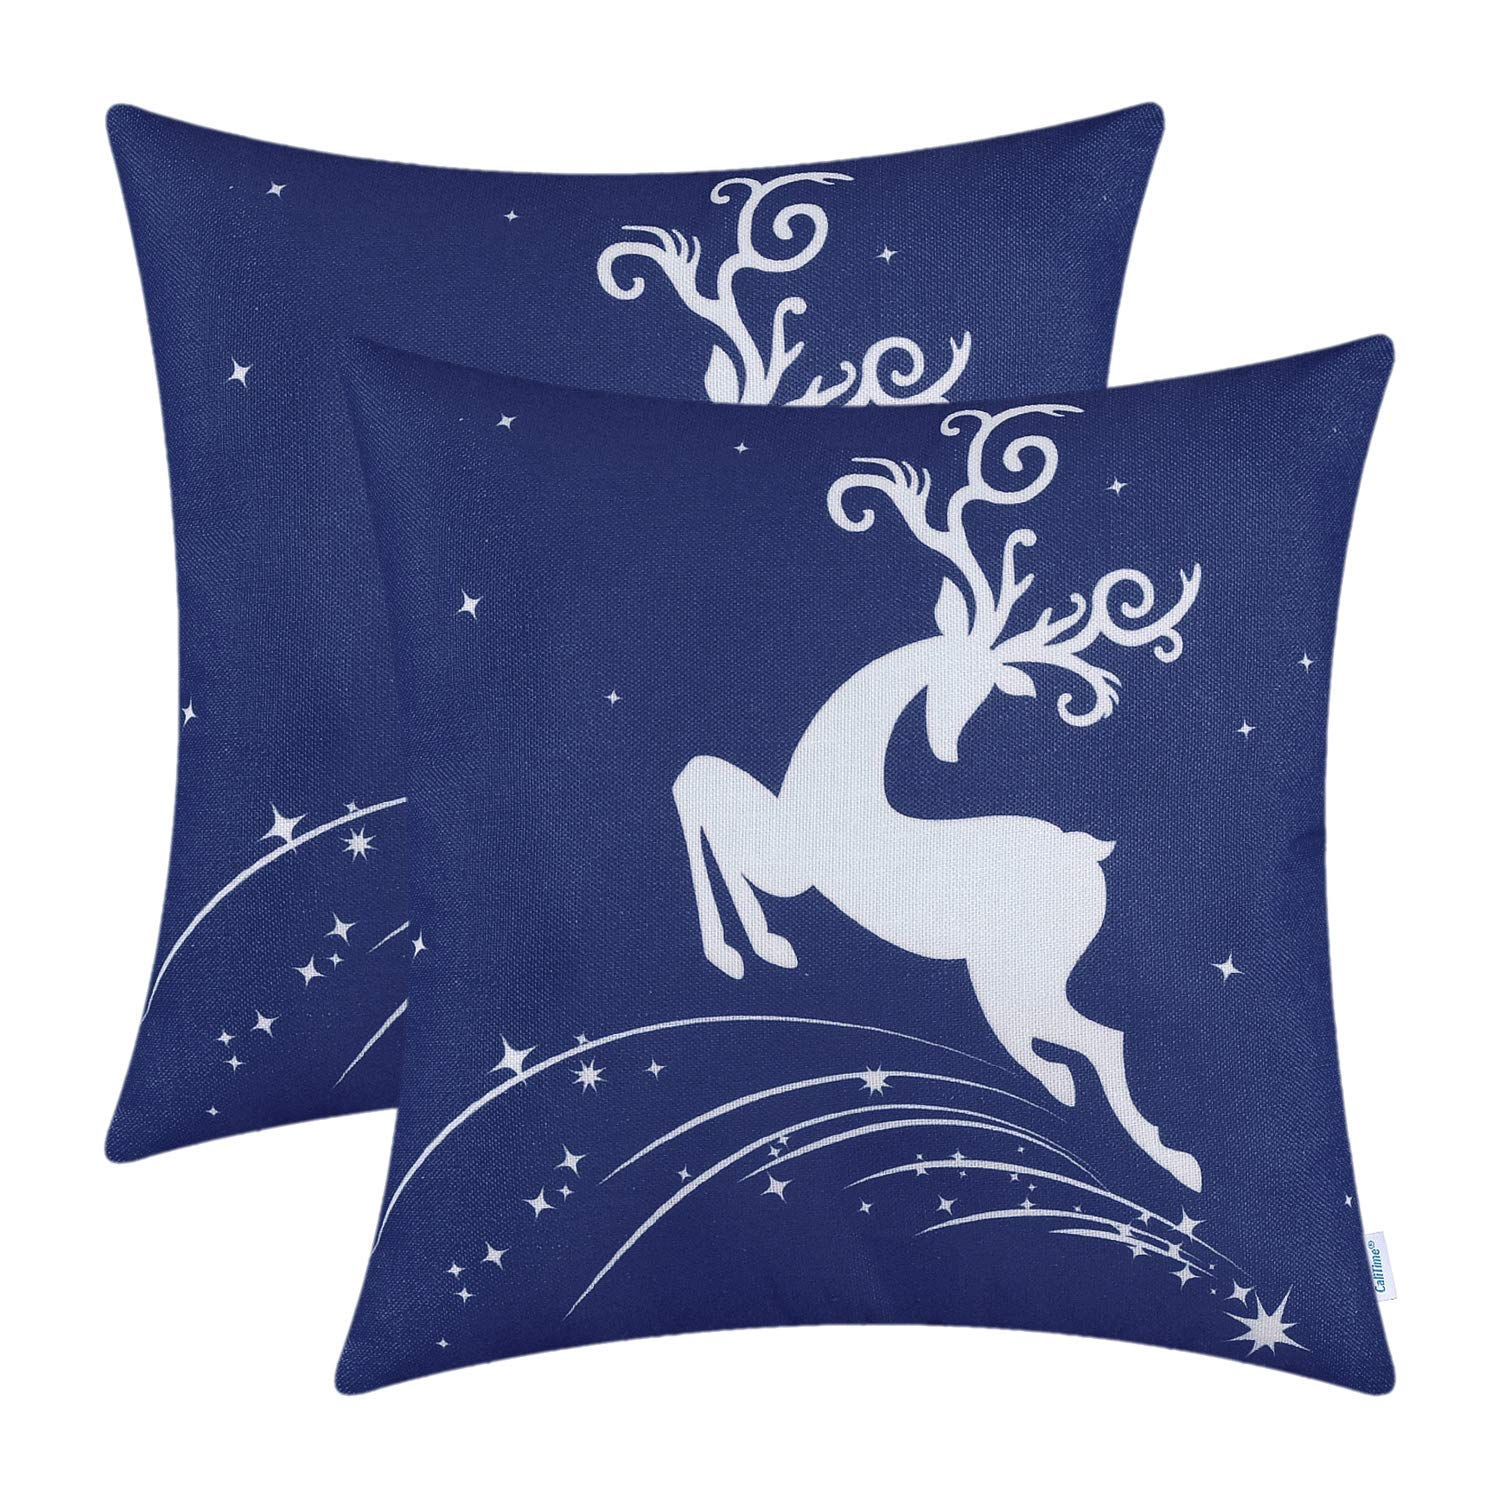 Jumping Reindeer Pillow Cover